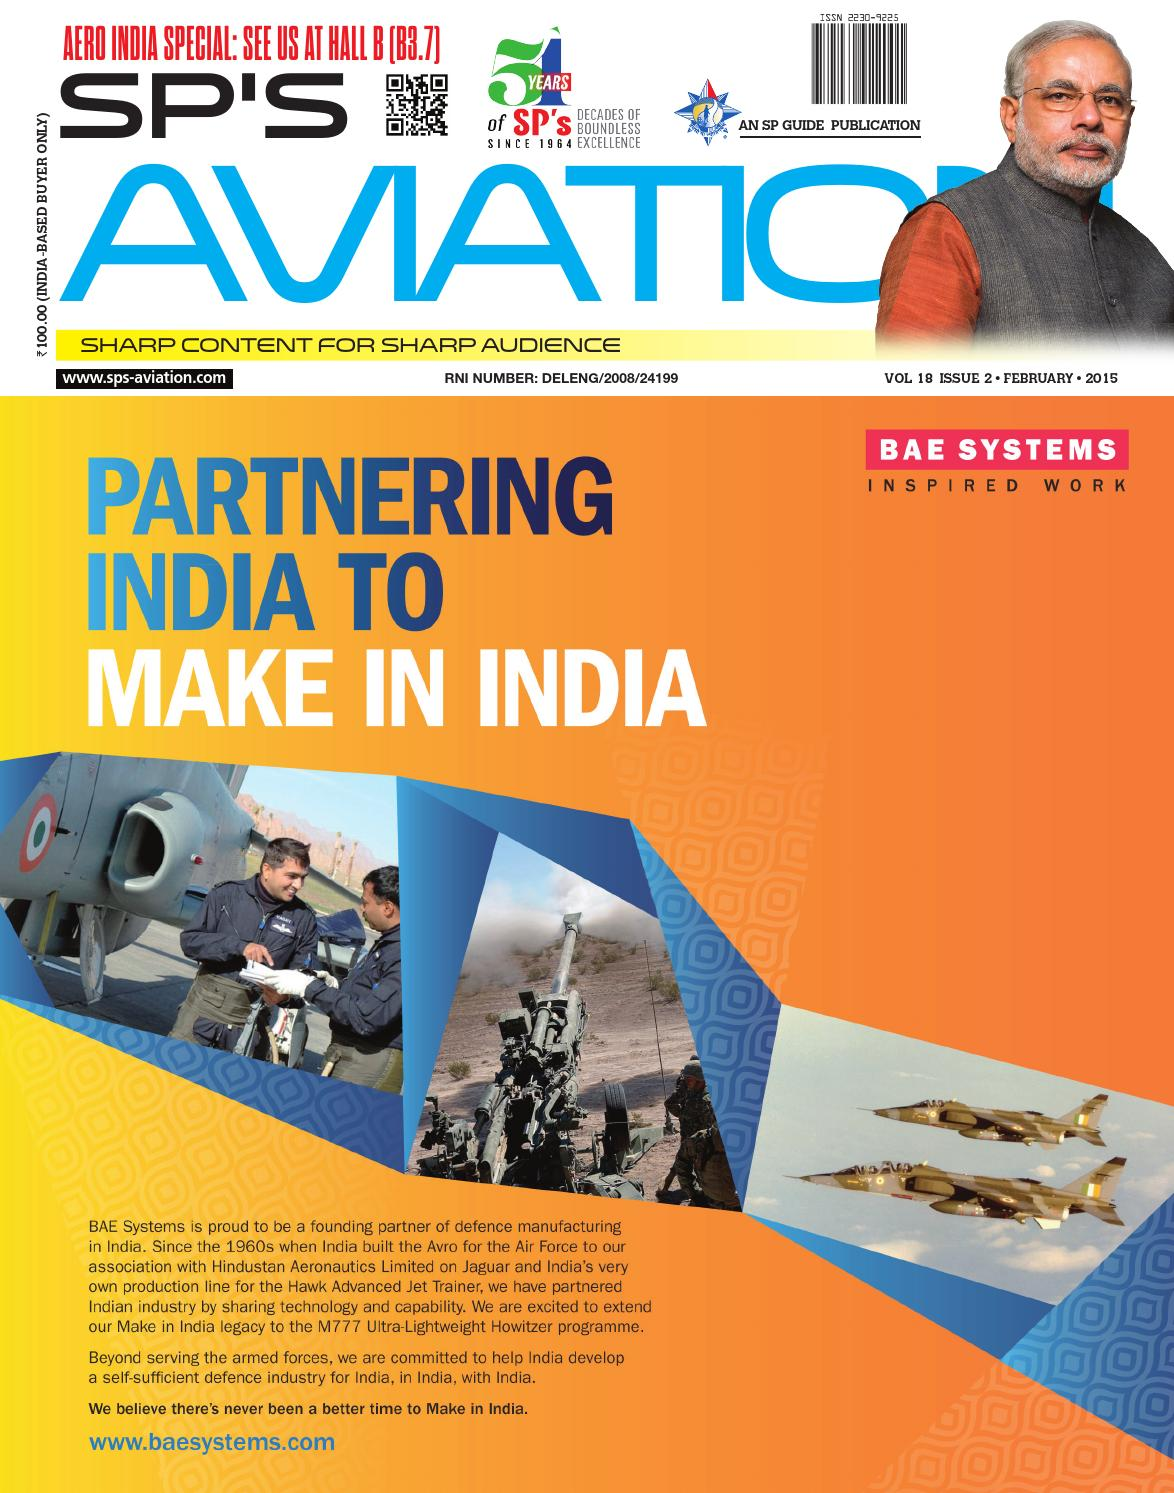 SP's Aviation February 2015 by SP Guide Publications Pvt Ltd